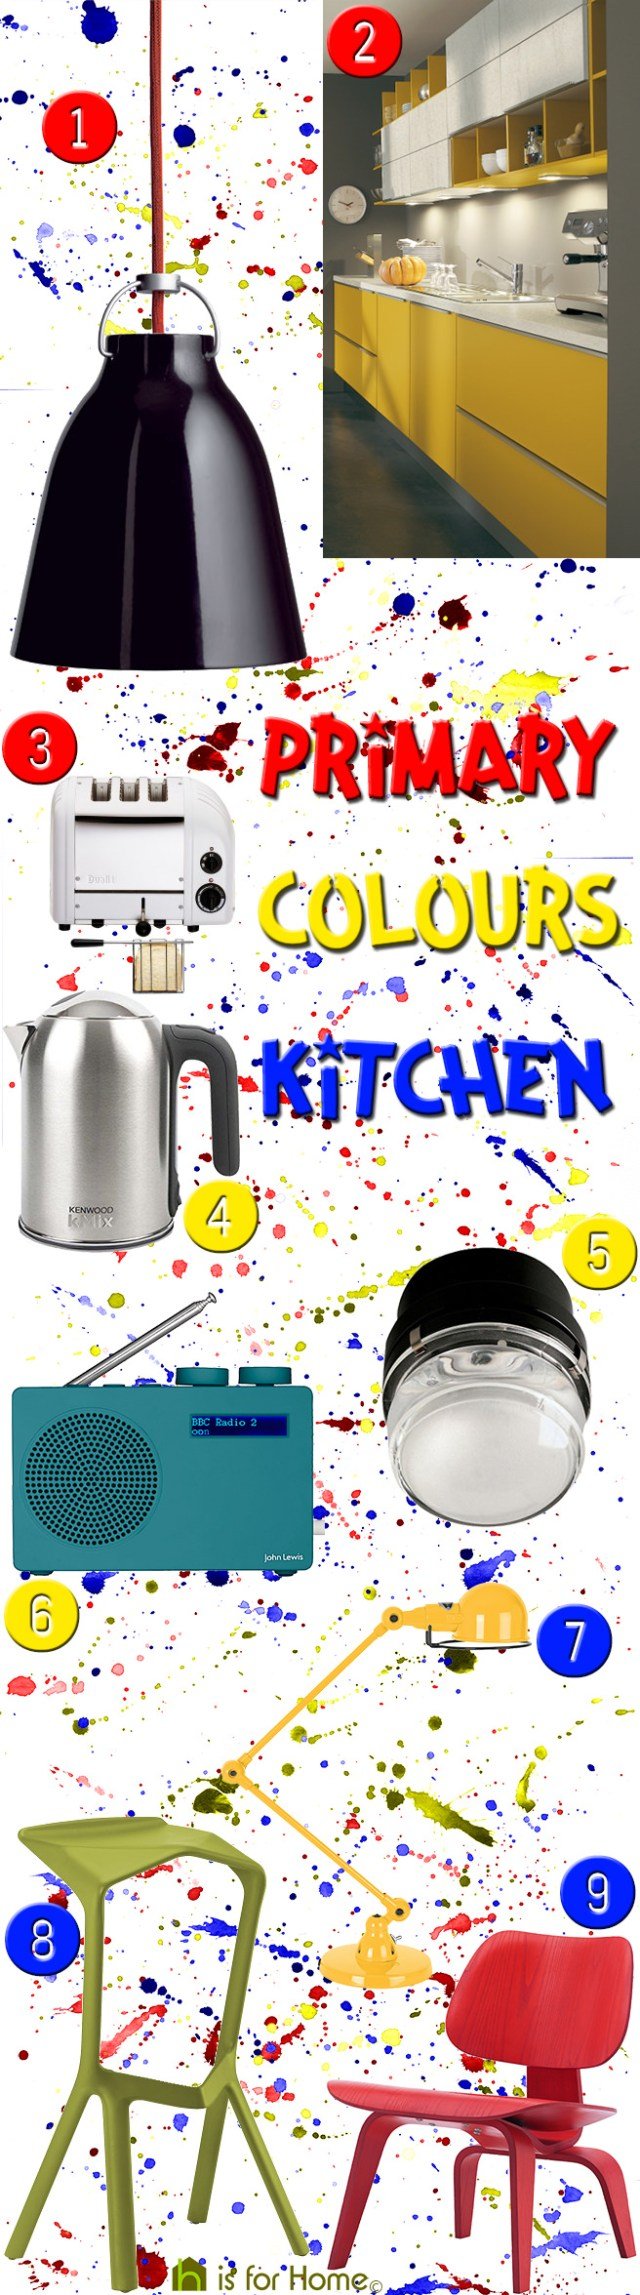 Get their look: Primary colours kitchen | H is for Home